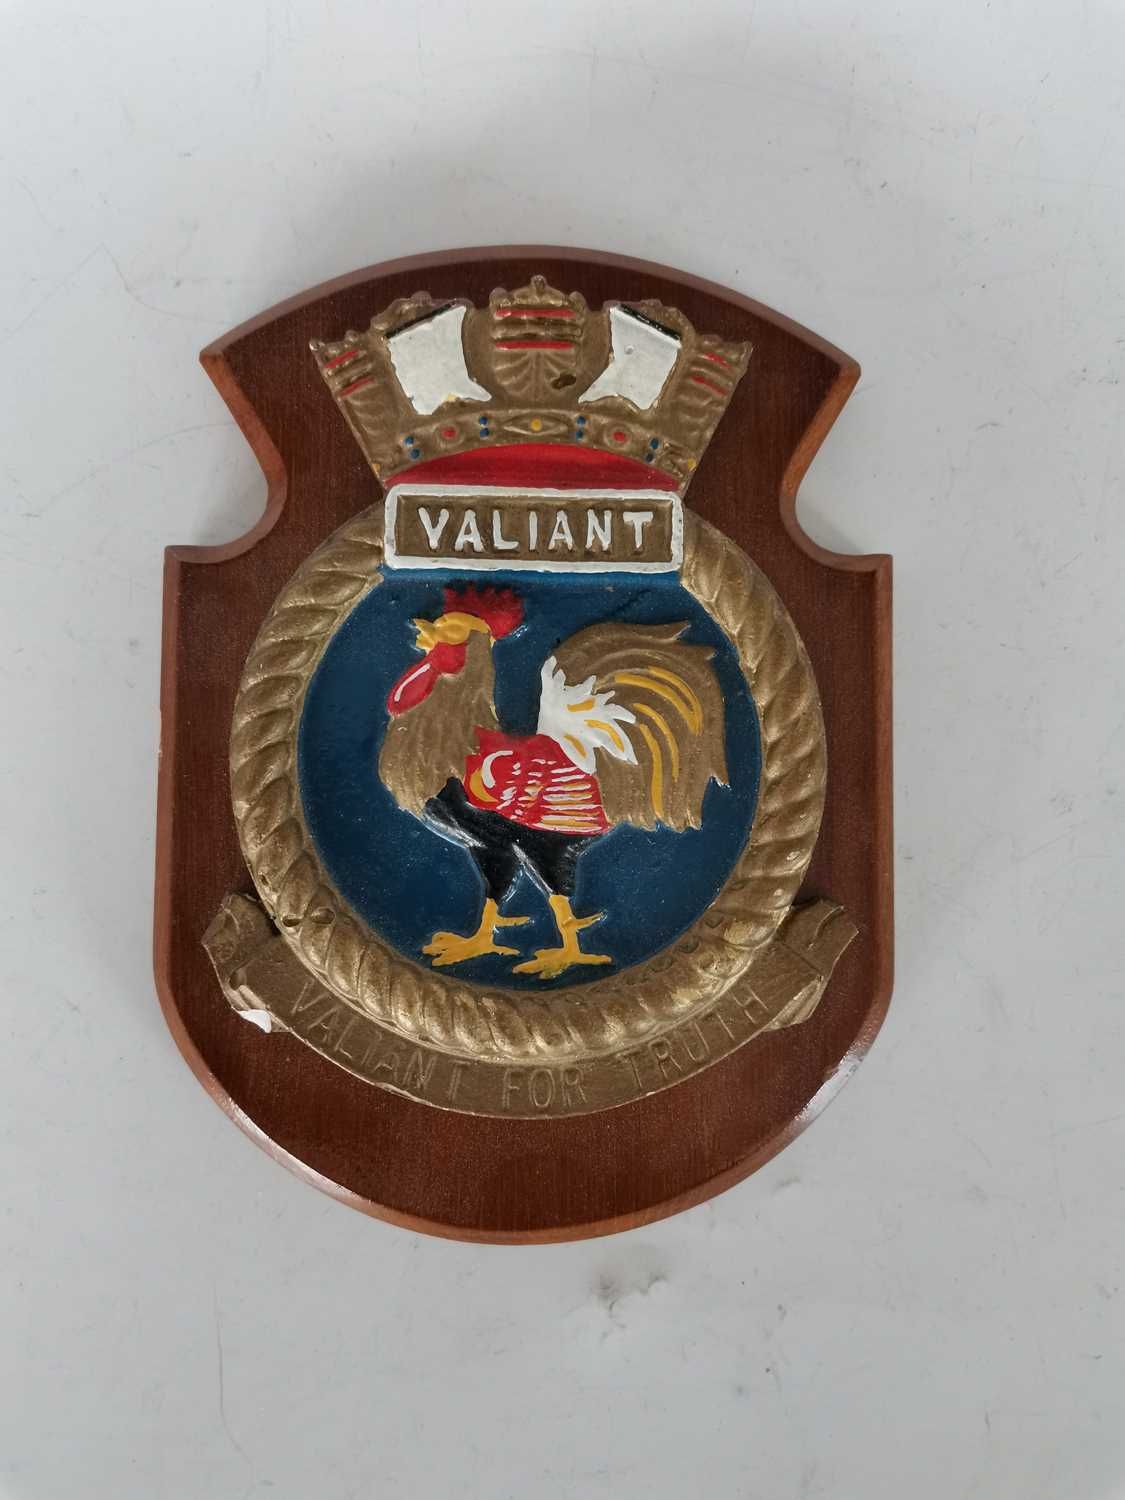 Lot 48 - A HMS Valiant 'Valiant For Truth' crest plaque.